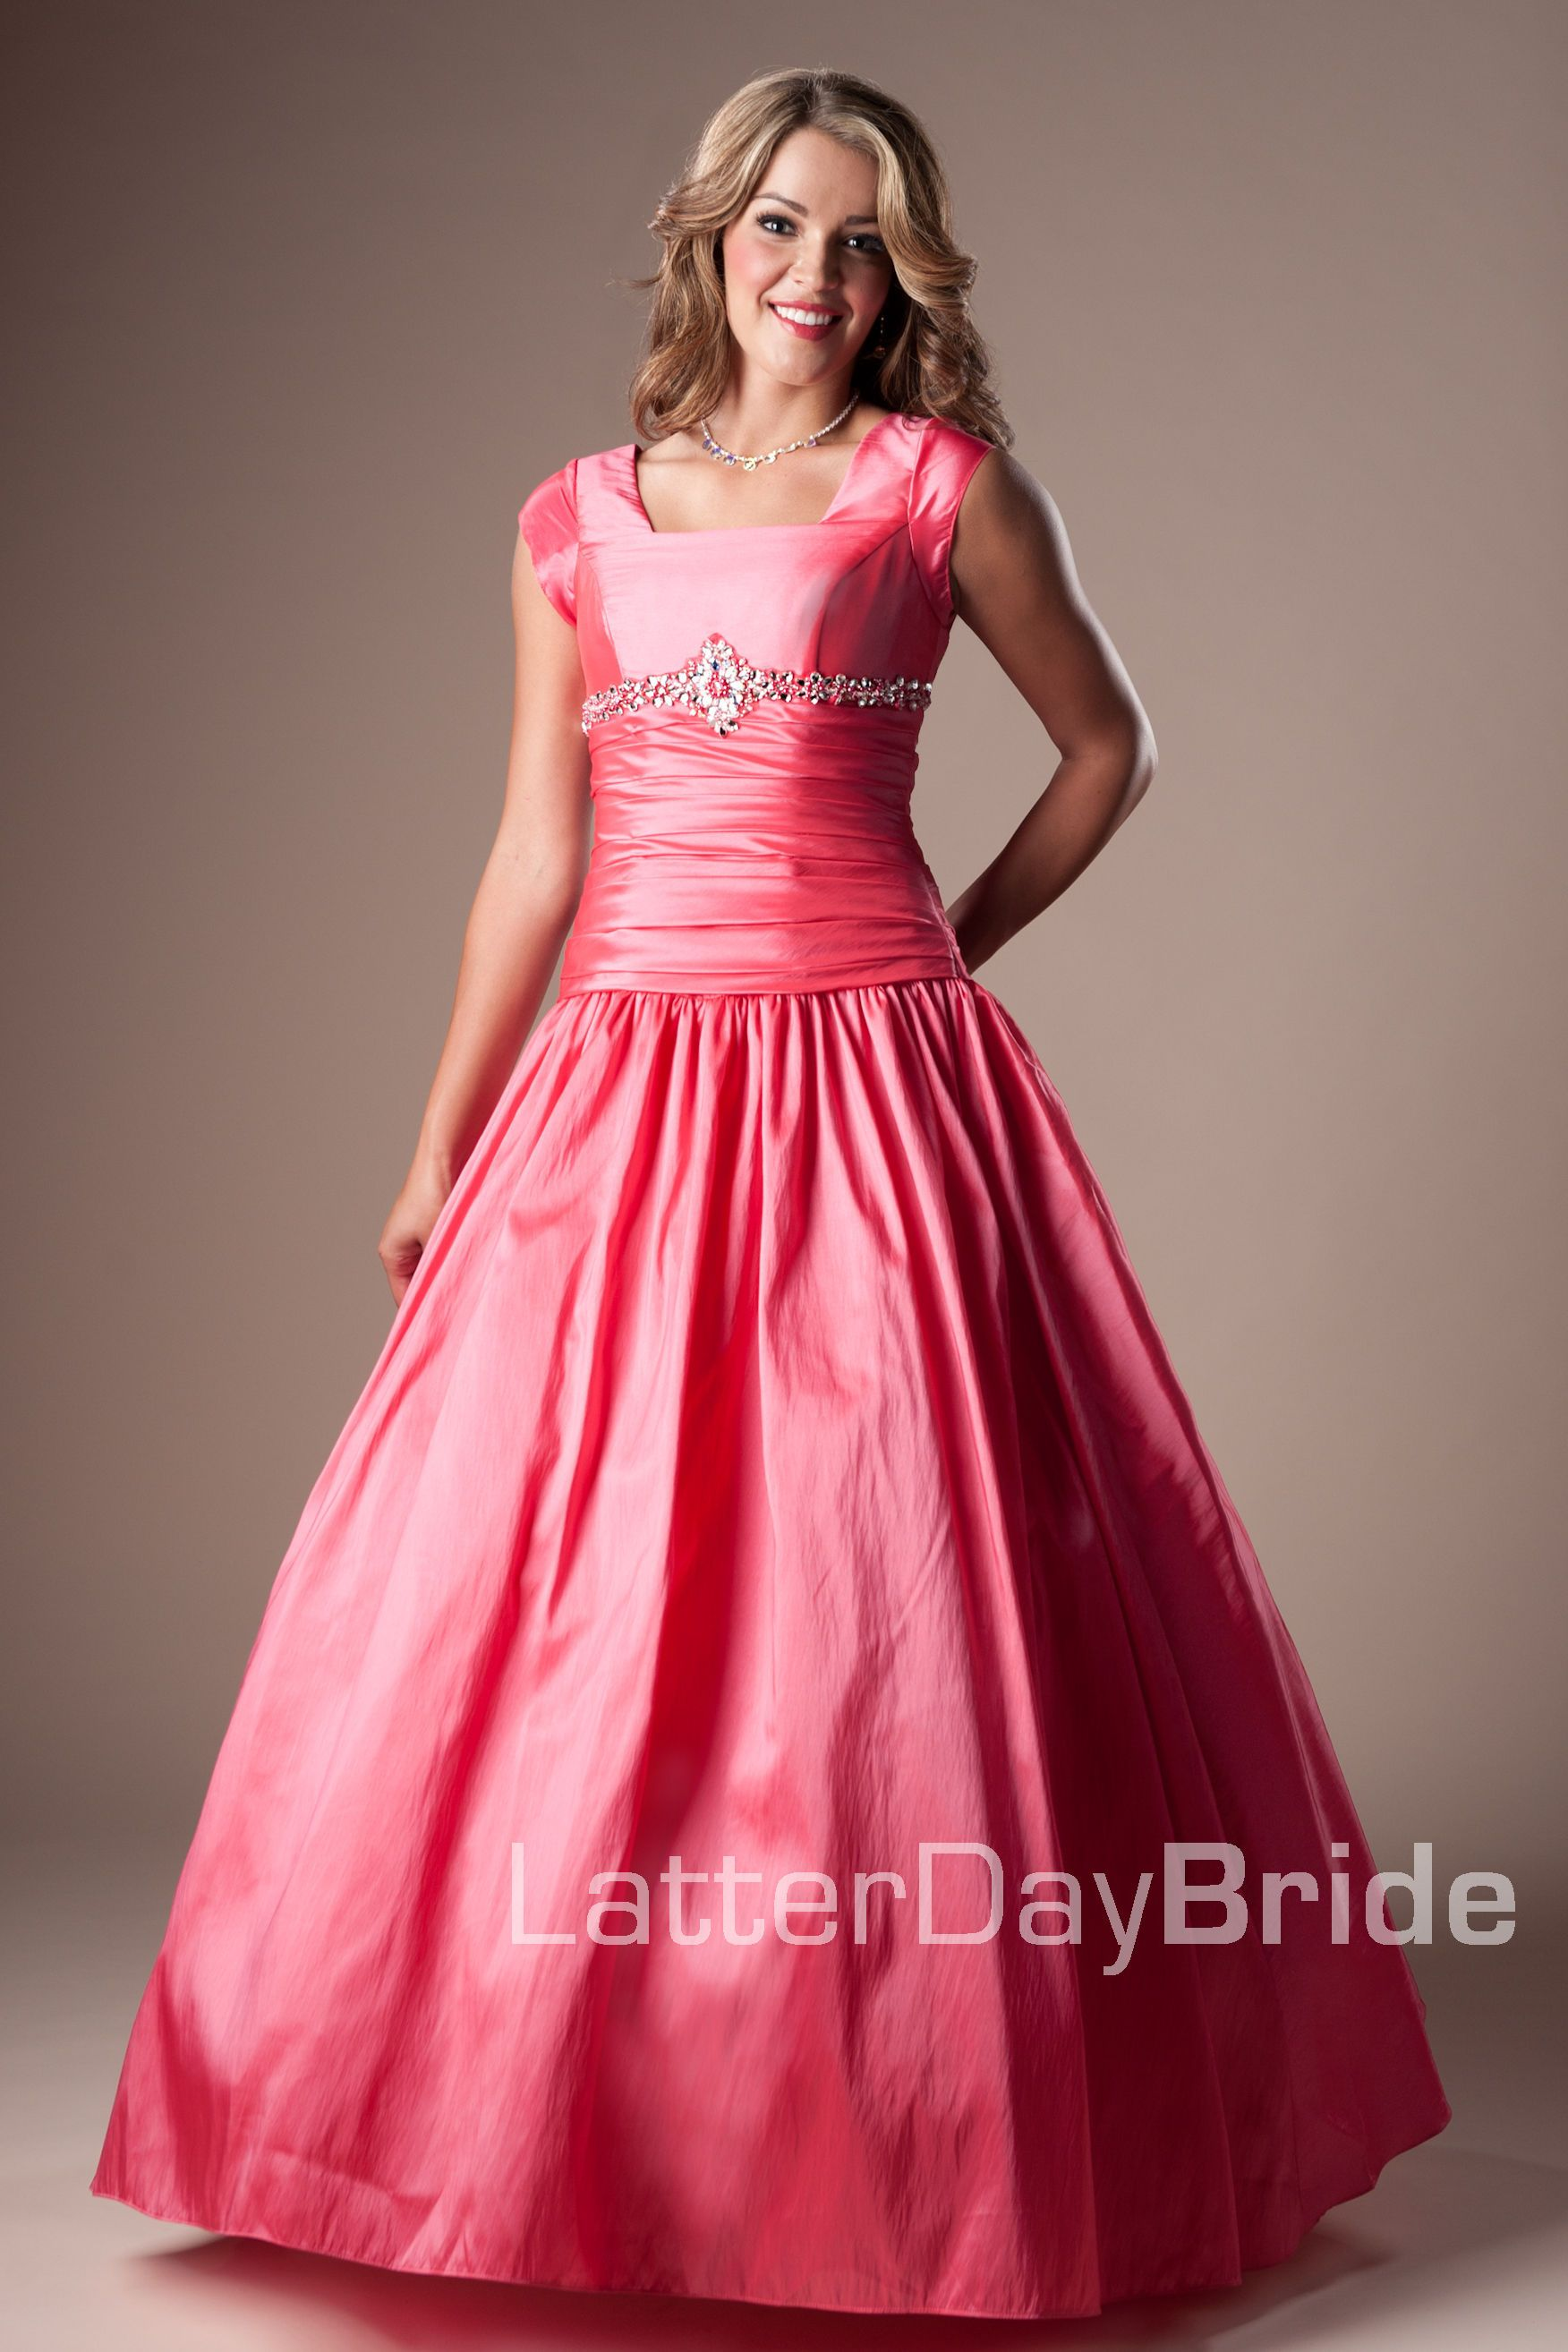 Bridesmaid & Prom, Sherry | LatterDayBride & Prom -Modest Mormon LDS ...